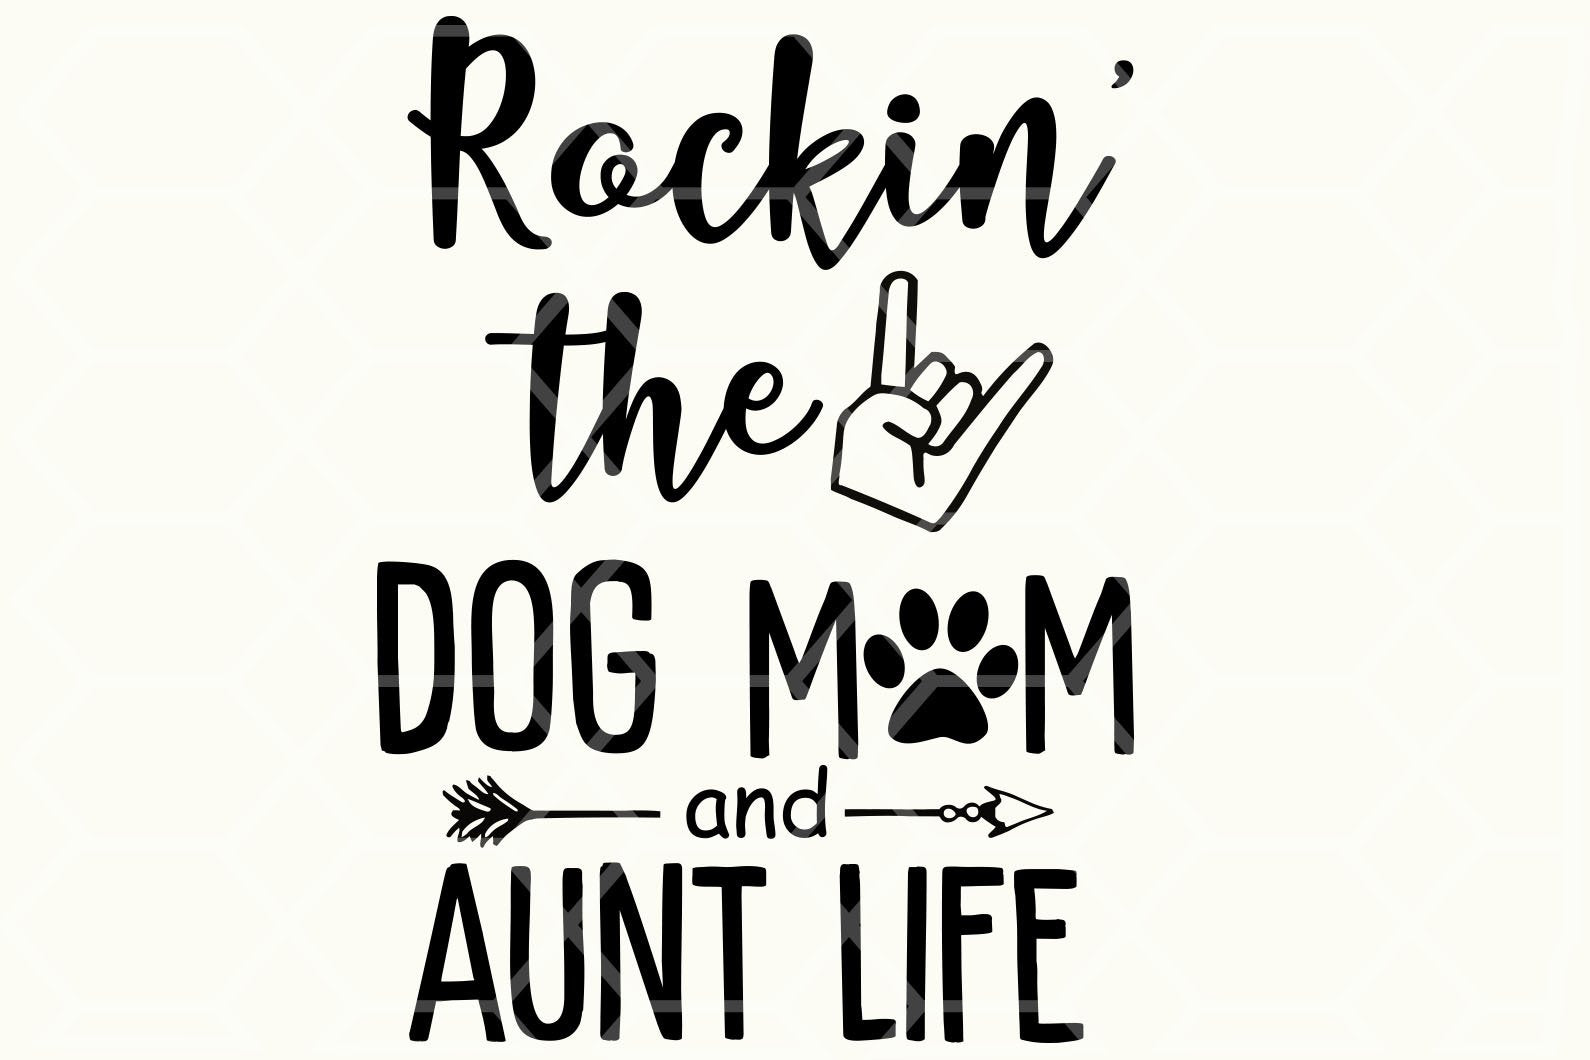 Rockin the dog mom and aunt life , mother life svg, mother's day svg, mother day, mother svg,  nana svg, mimi svg For Silhouette, Files For Cricut, SVG, DXF, EPS, PNG Instant Download